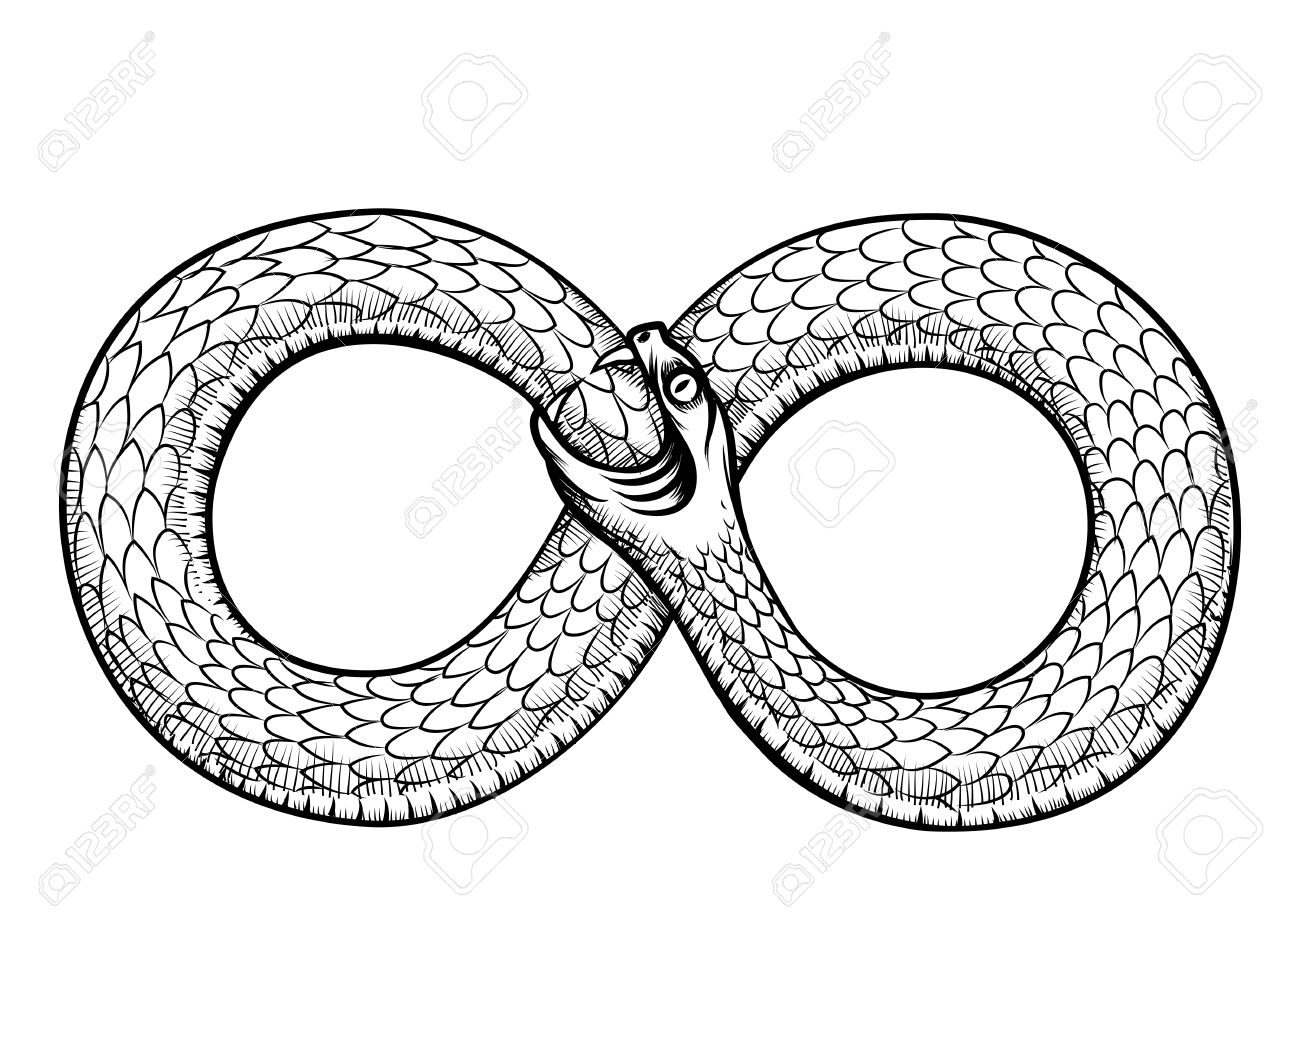 1300x1040 Snake Curled In Infinity Ring. Ouroboros Devouring Its Own Tail